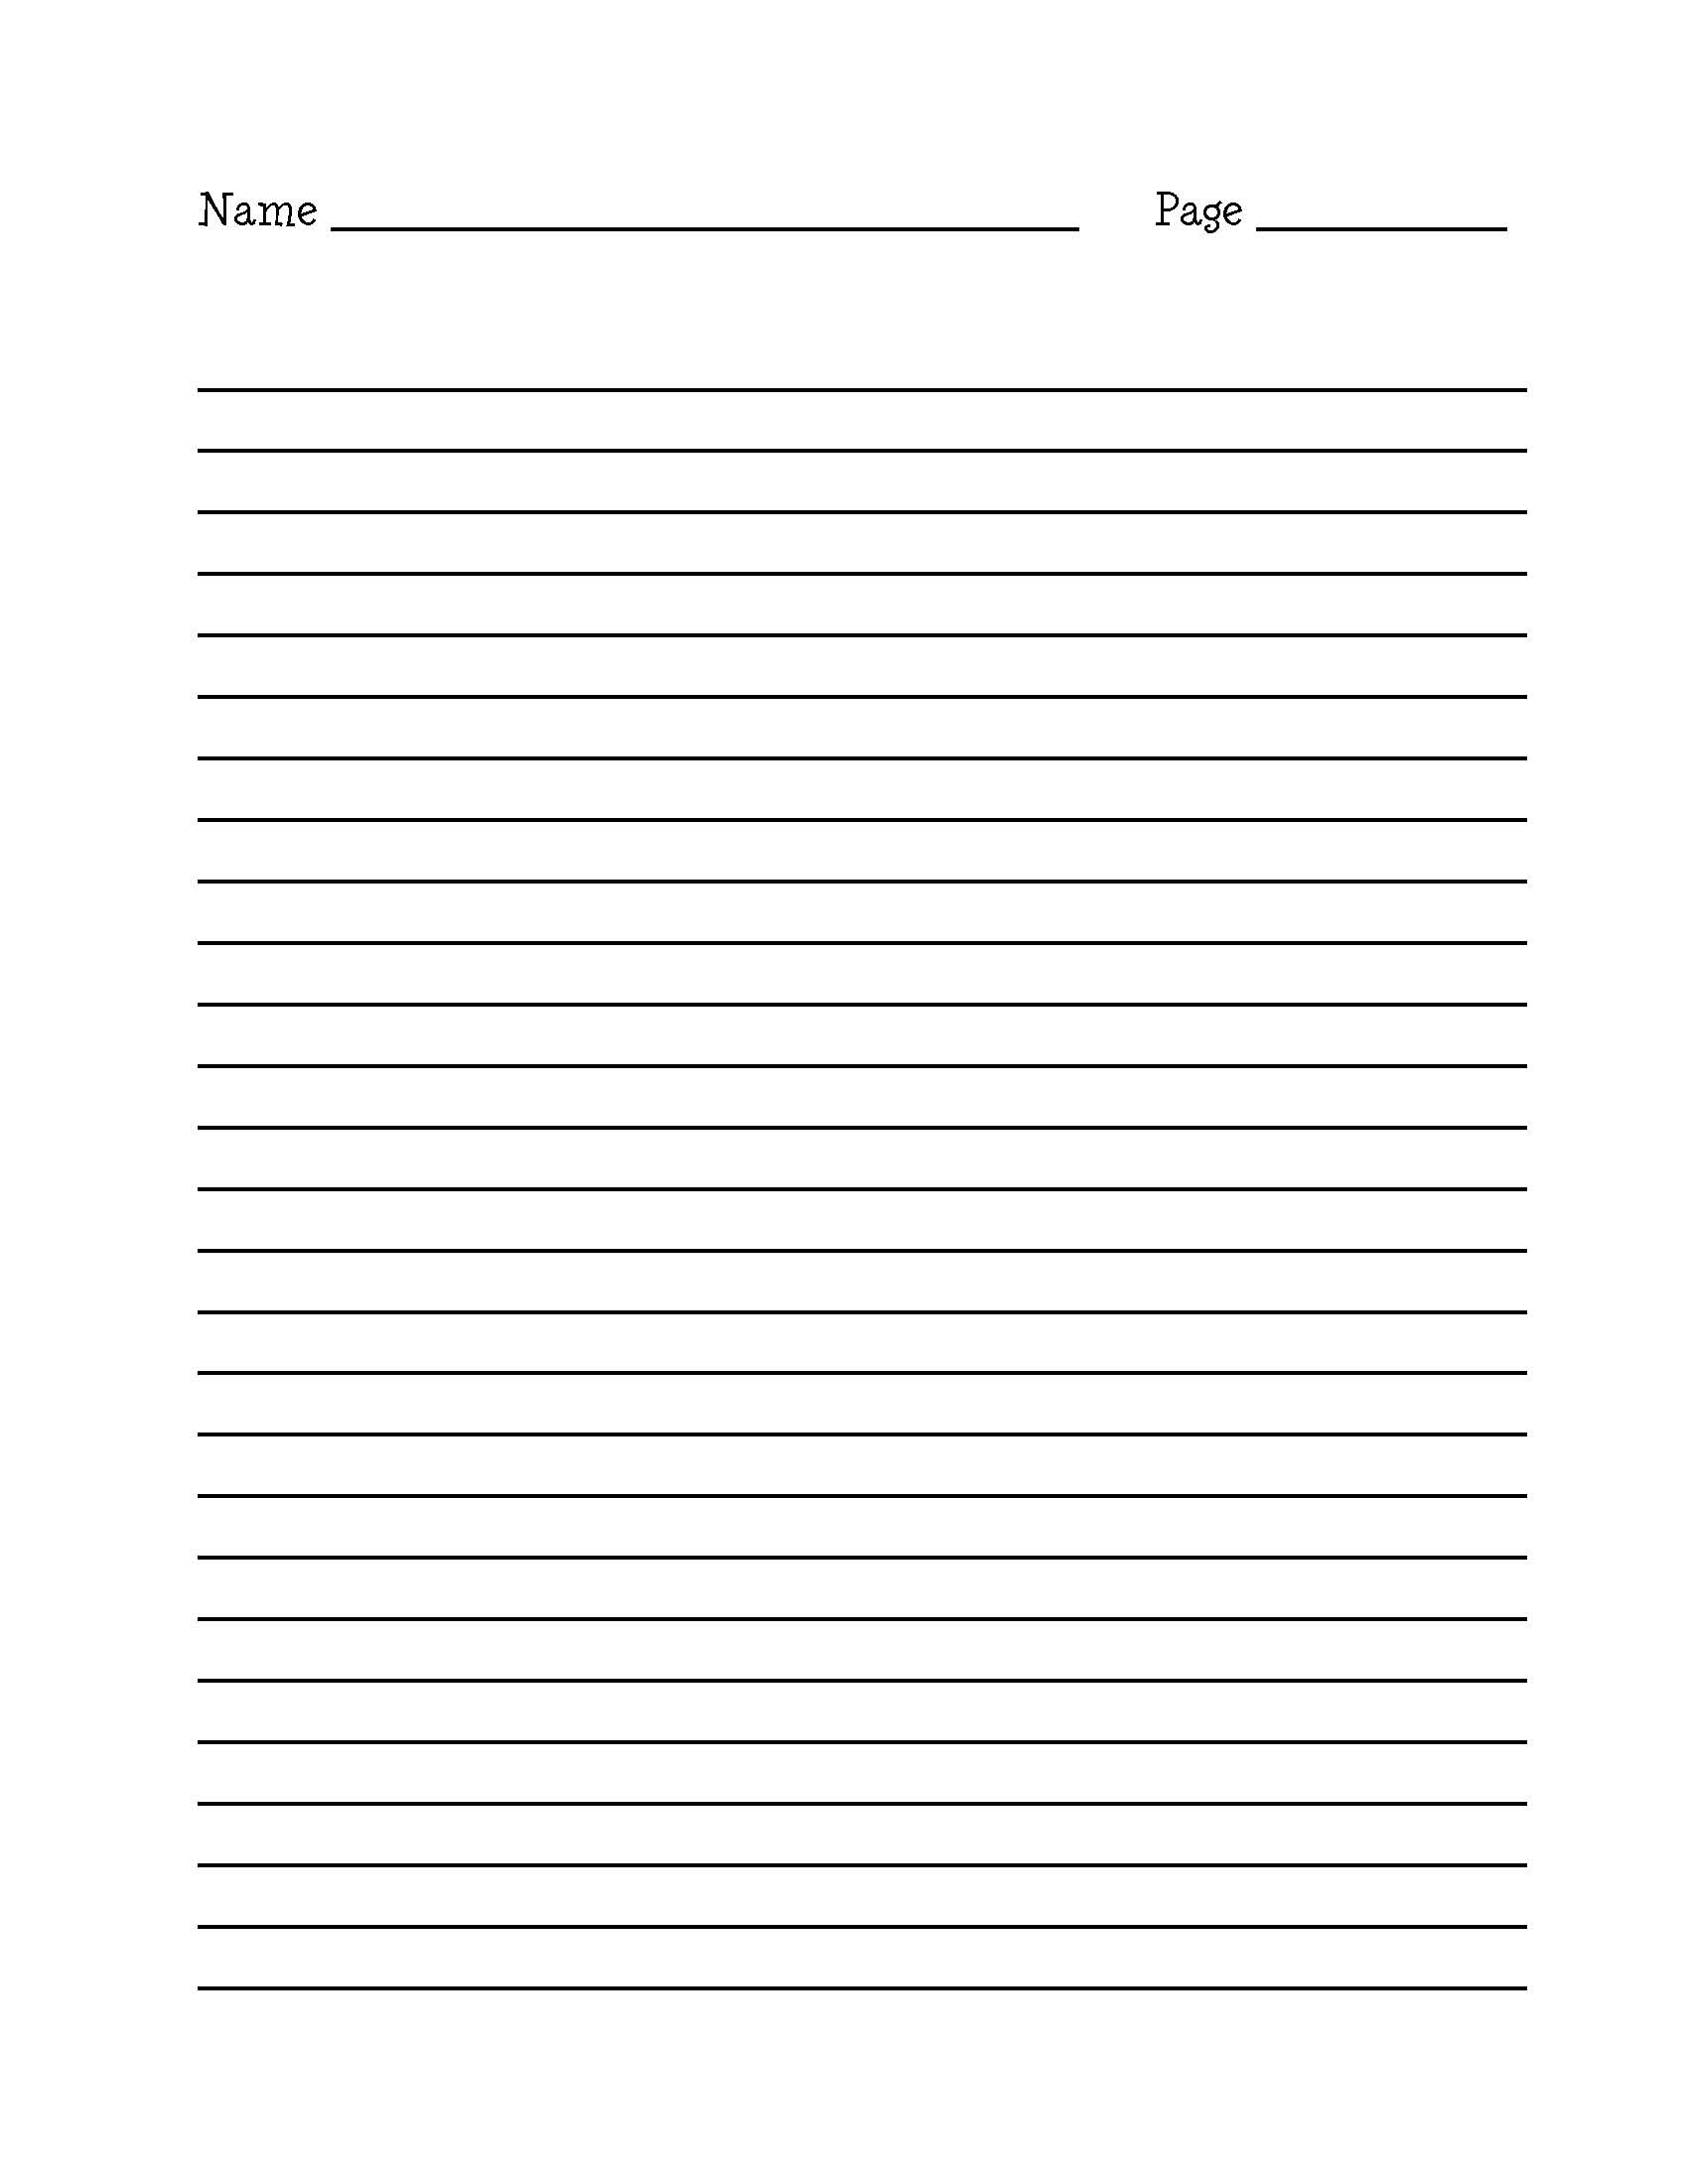 Blank Editable Lined Paper Template Word Pdf | Lined Paper Template - Free Printable Lined Paper